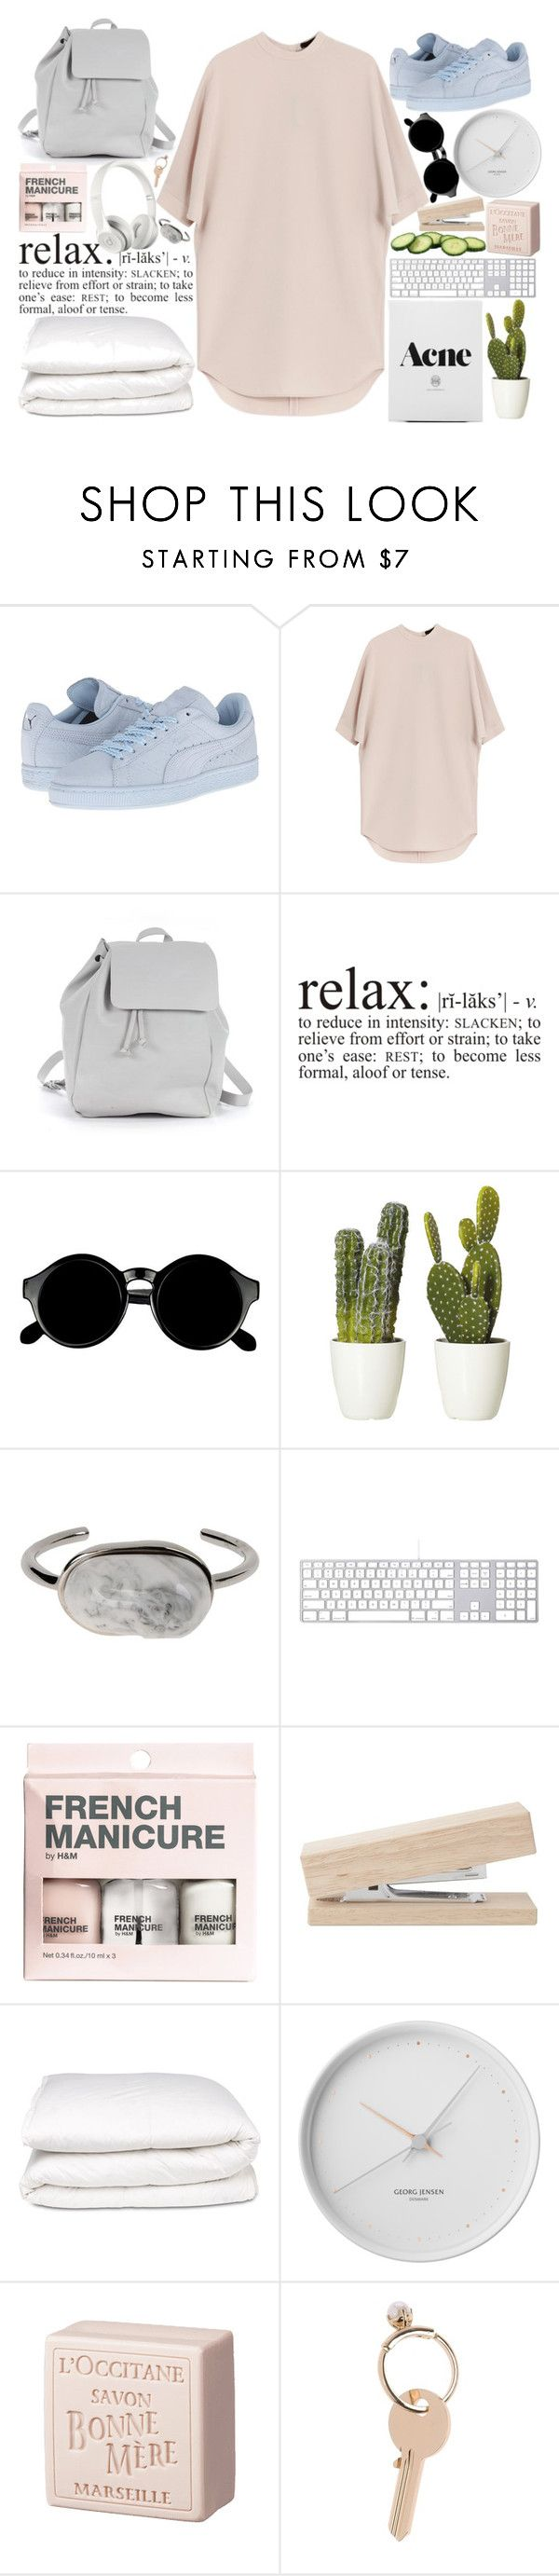 """i wanna feel your heartlines"" by janeorlova ❤ liked on Polyvore featuring Puma, Alexander Wang, Zara TRF, Retrò, Beats by Dr. Dre, Balenciaga, H&M, Selfridges, Georg Jensen and L'Occitane"